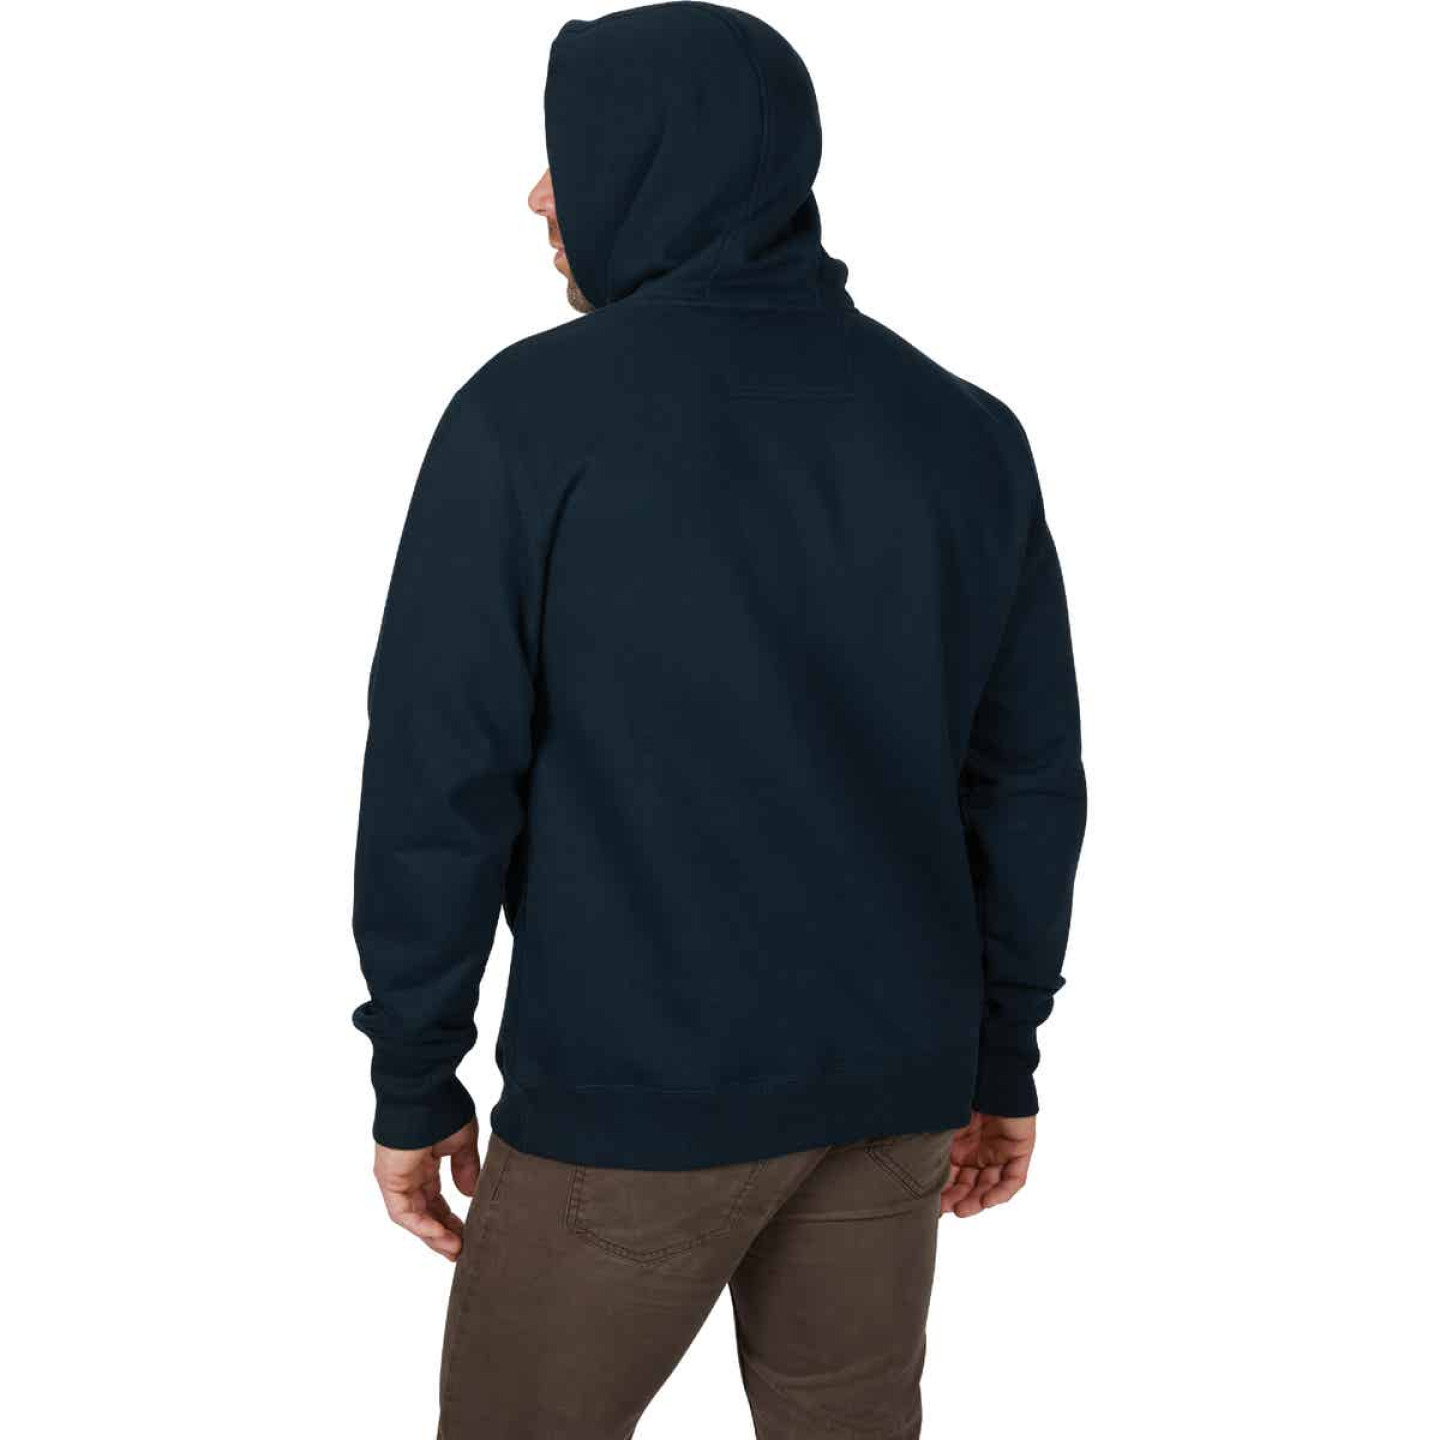 Milwaukee Small Navy Blue Heavy-Duty Pullover Hooded Sweatshirt Image 3